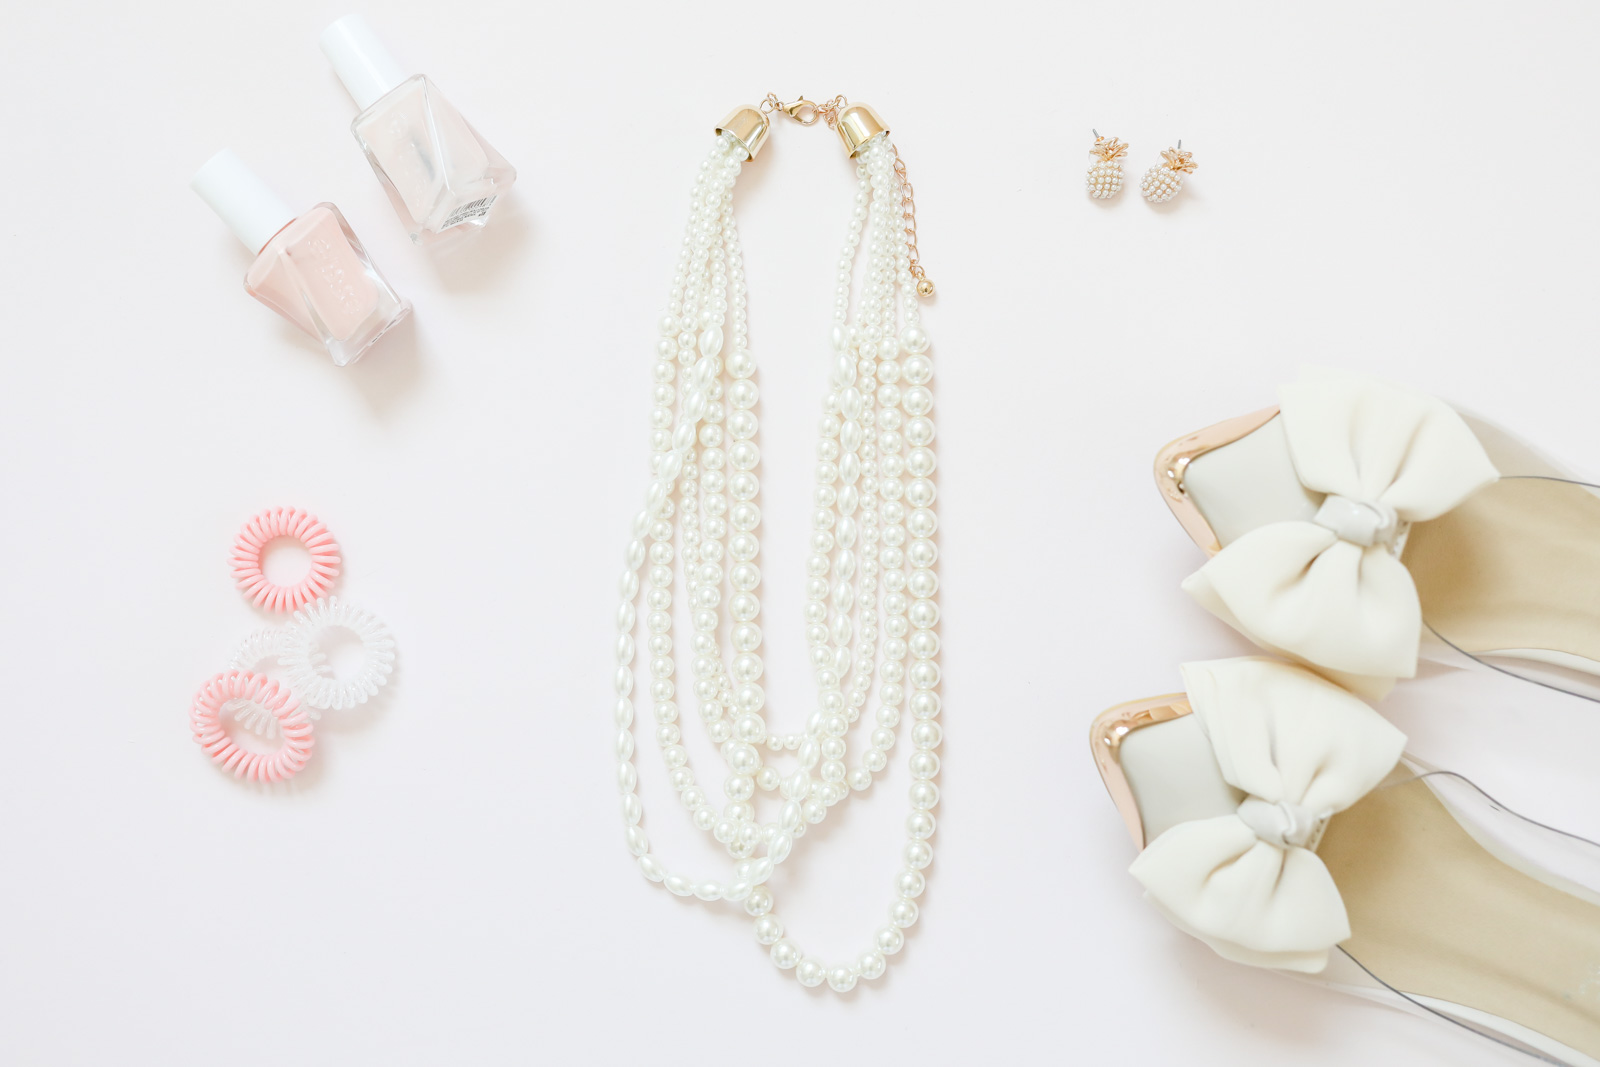 pearl layered necklace | pink nail polish | cute bow shoes | pineapple earrings | Summer accessories | pink and pearls | every day joie by elle bowes